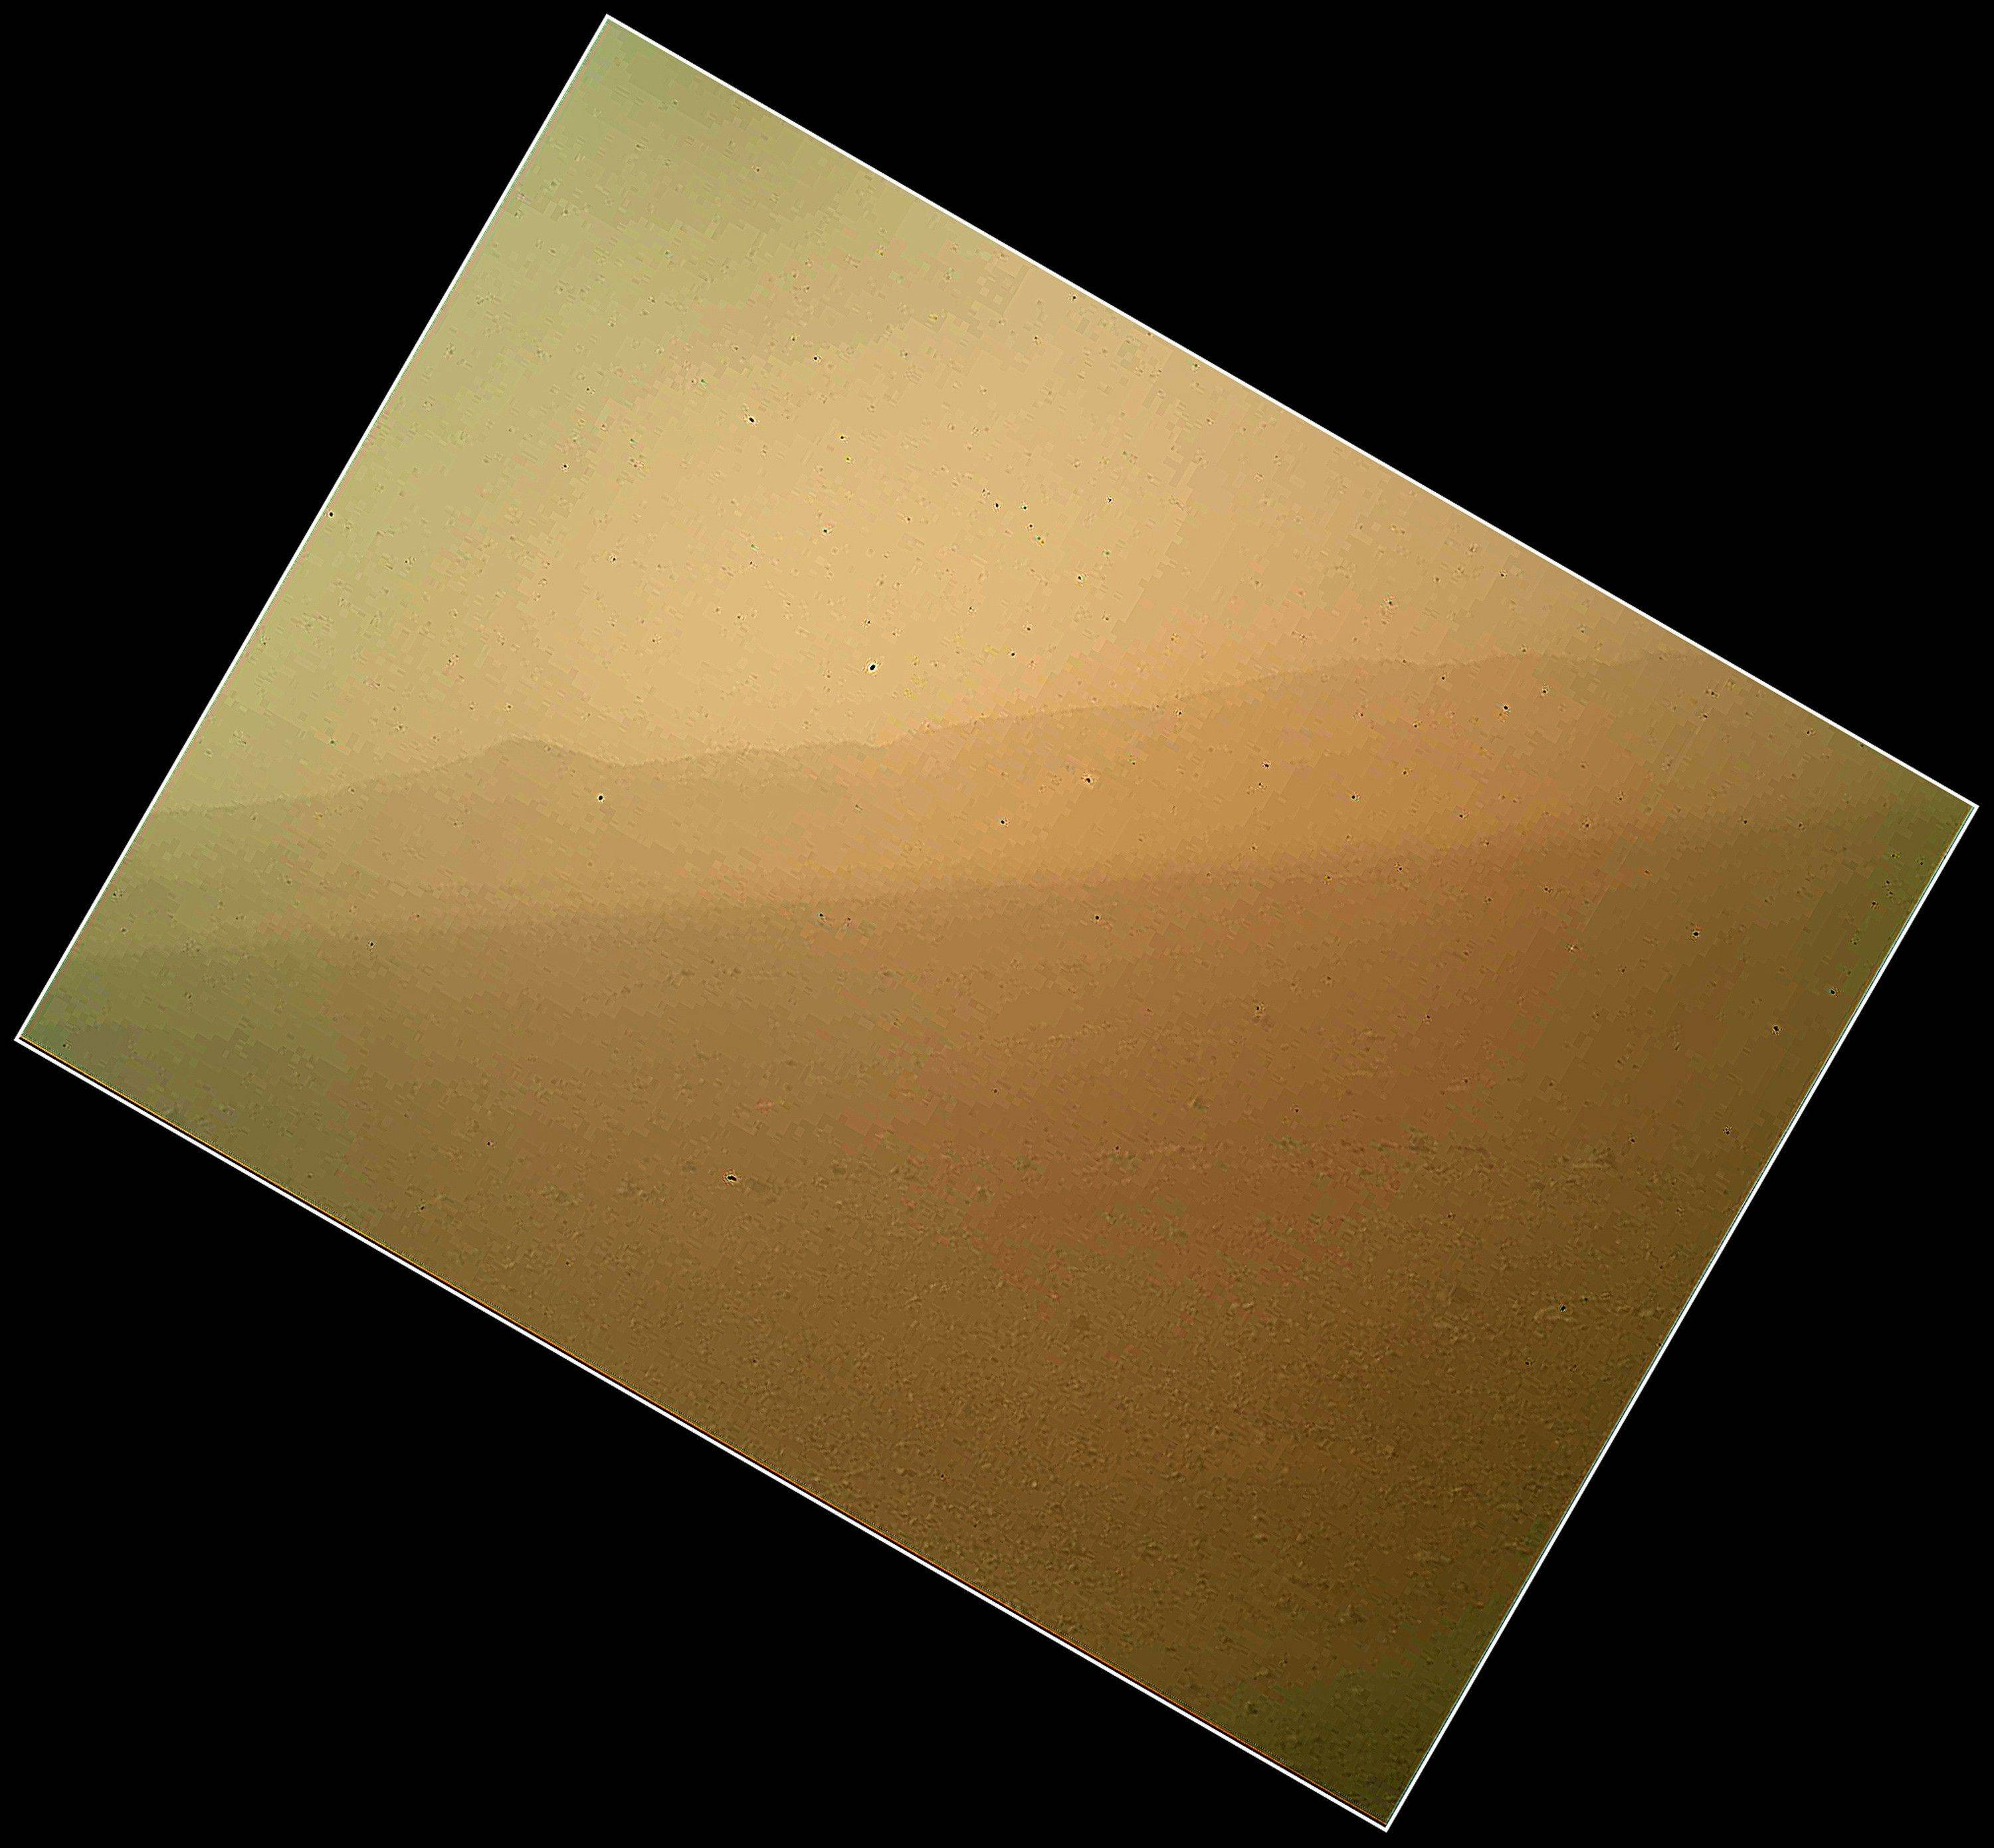 This is the first color view of the north wall and rim of Gale Crater where NASA's rover Curiosity landed Sunday night. The picture was taken by the rover's camera at the end of its stowed robotic arm and appears fuzzy because of dust on the camera's cover.